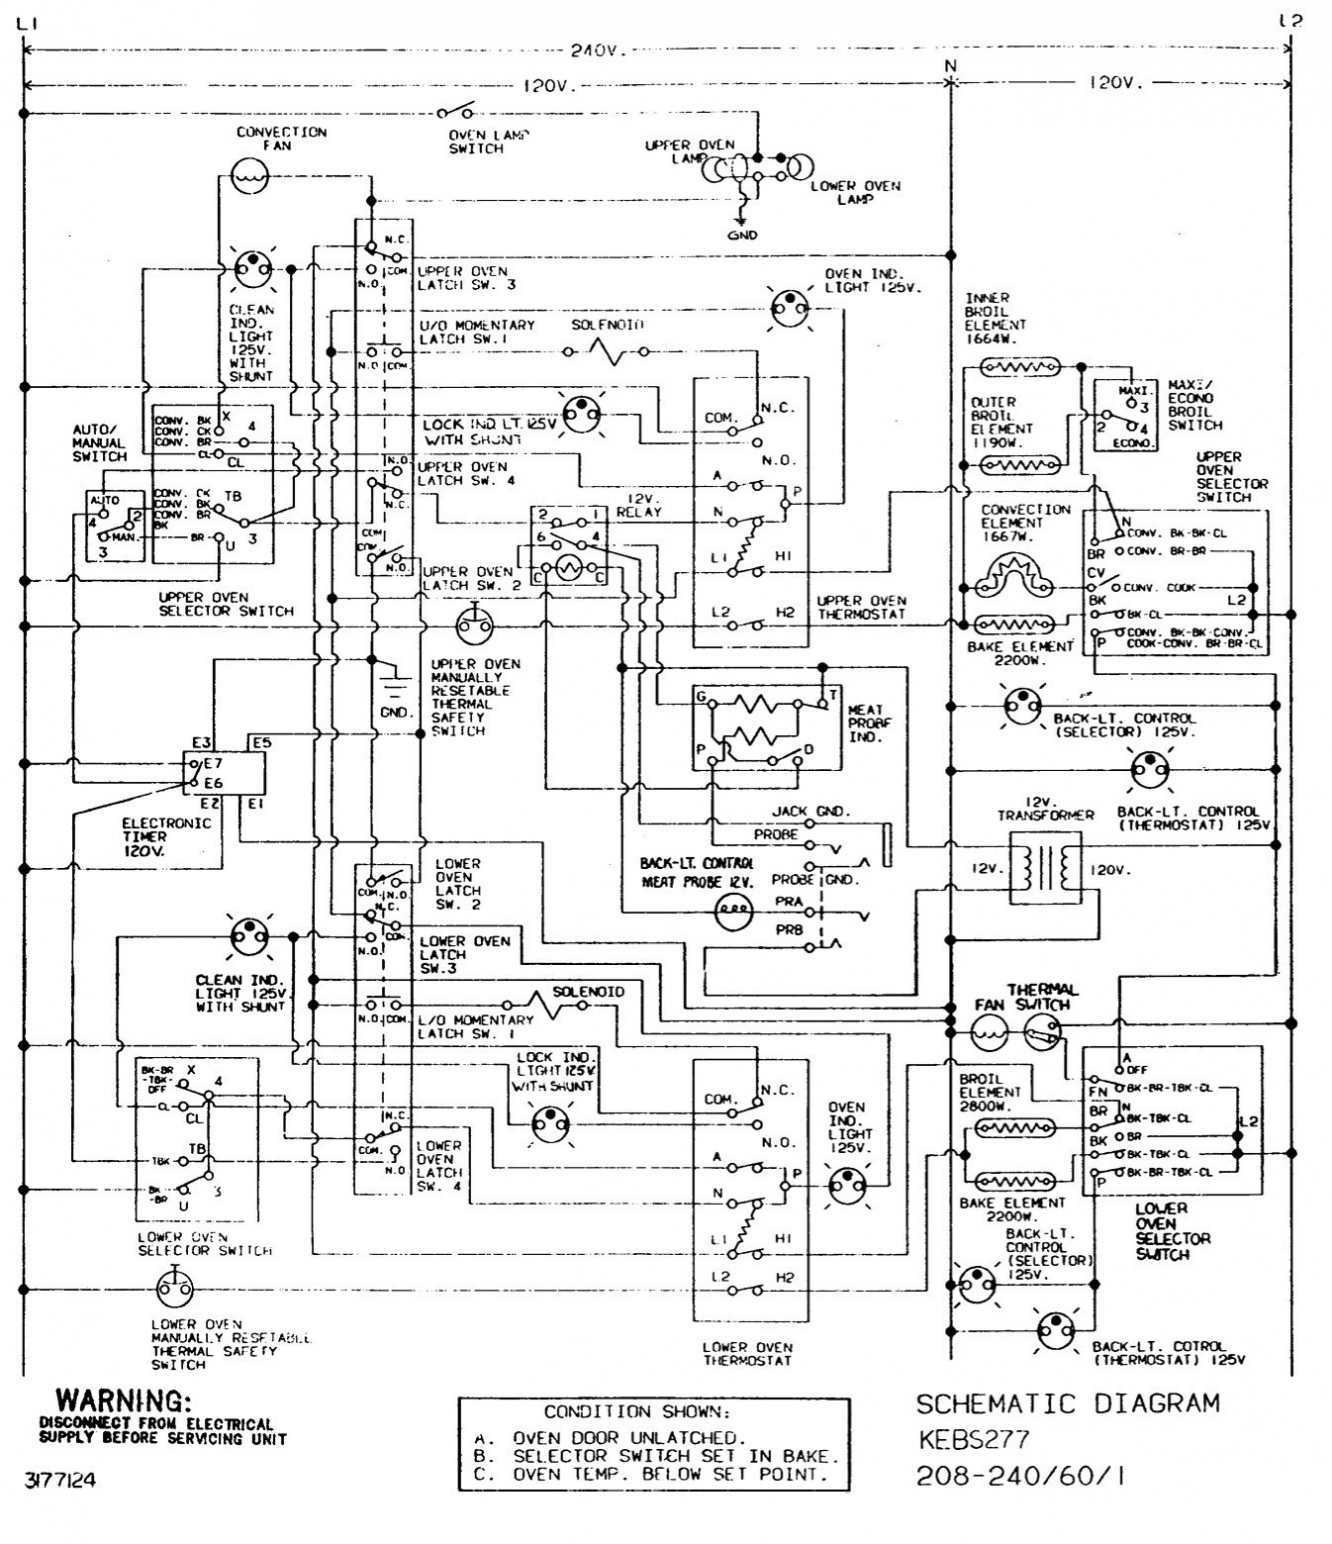 Ge Cooktop Wiring Diagram - Wiring Diagrams Click - Ge Stove Wiring Diagram